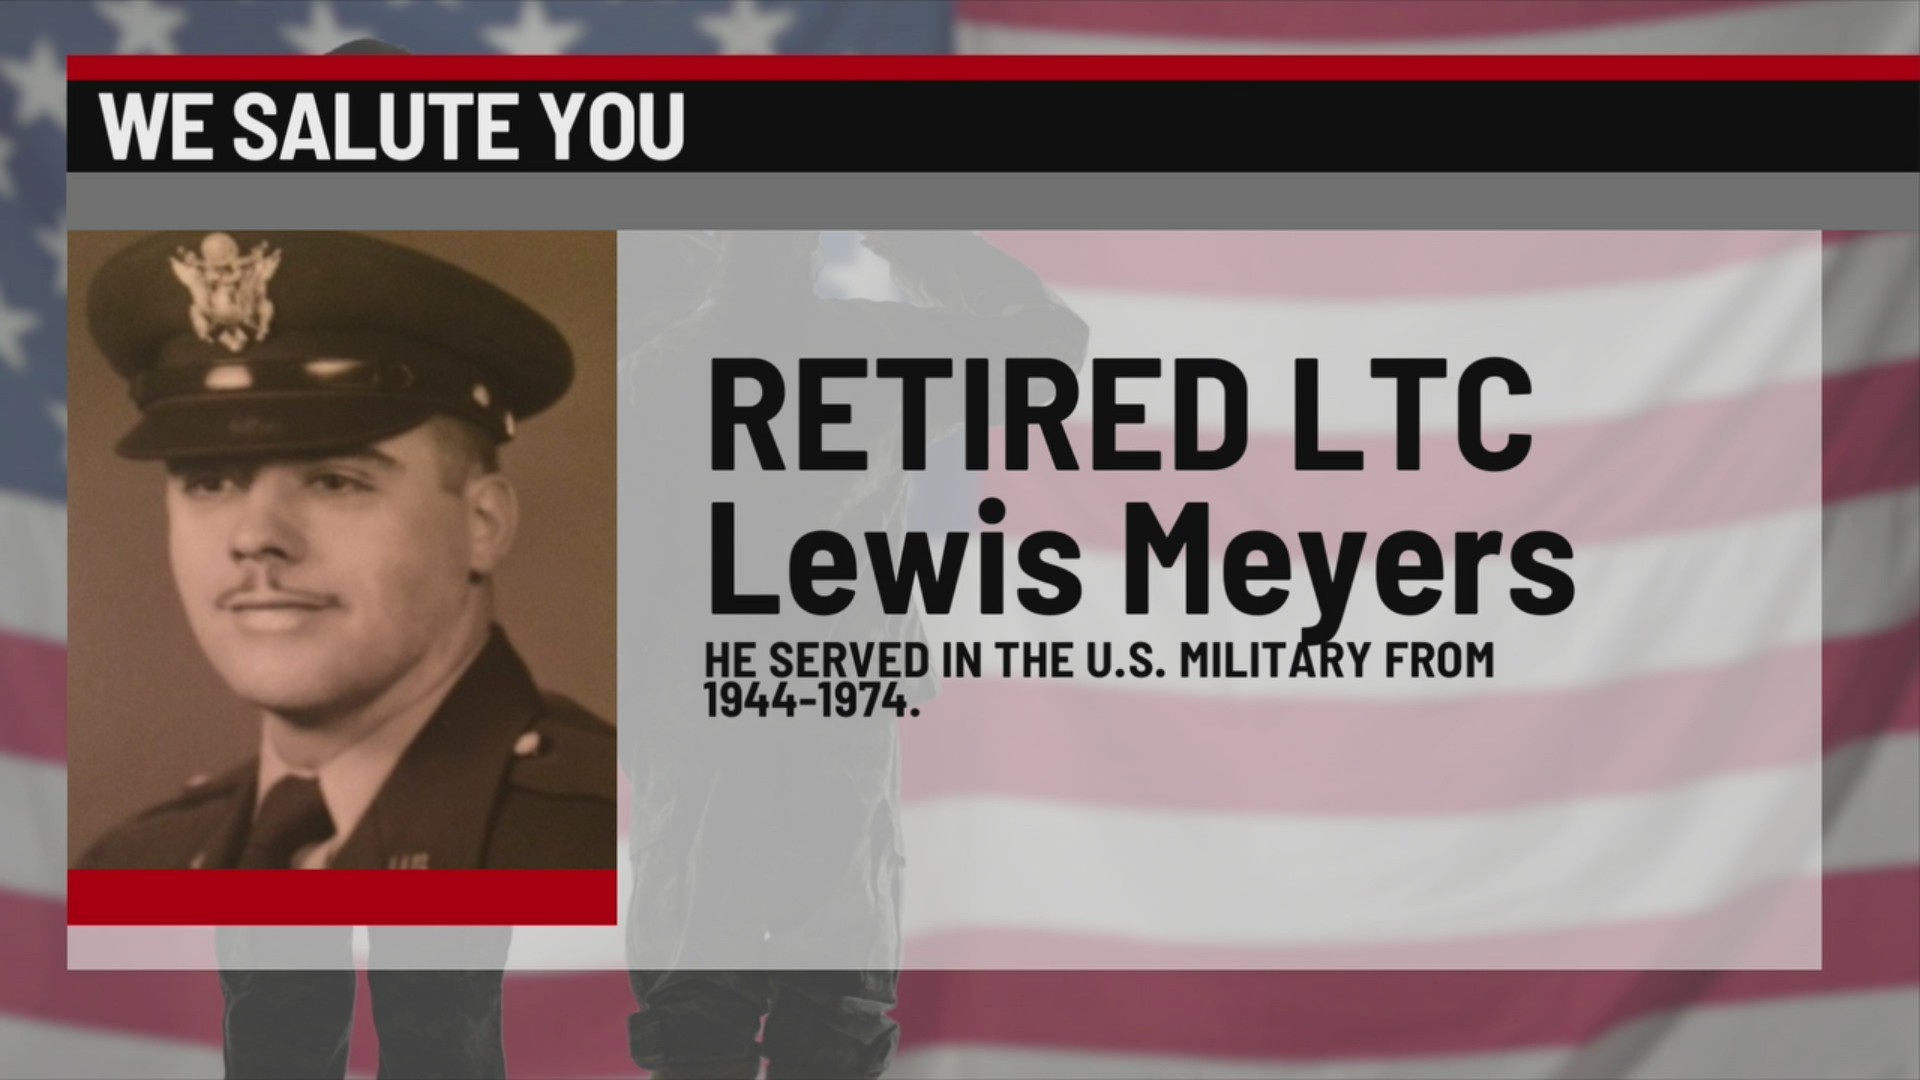 We Salute You Lewis Meyers